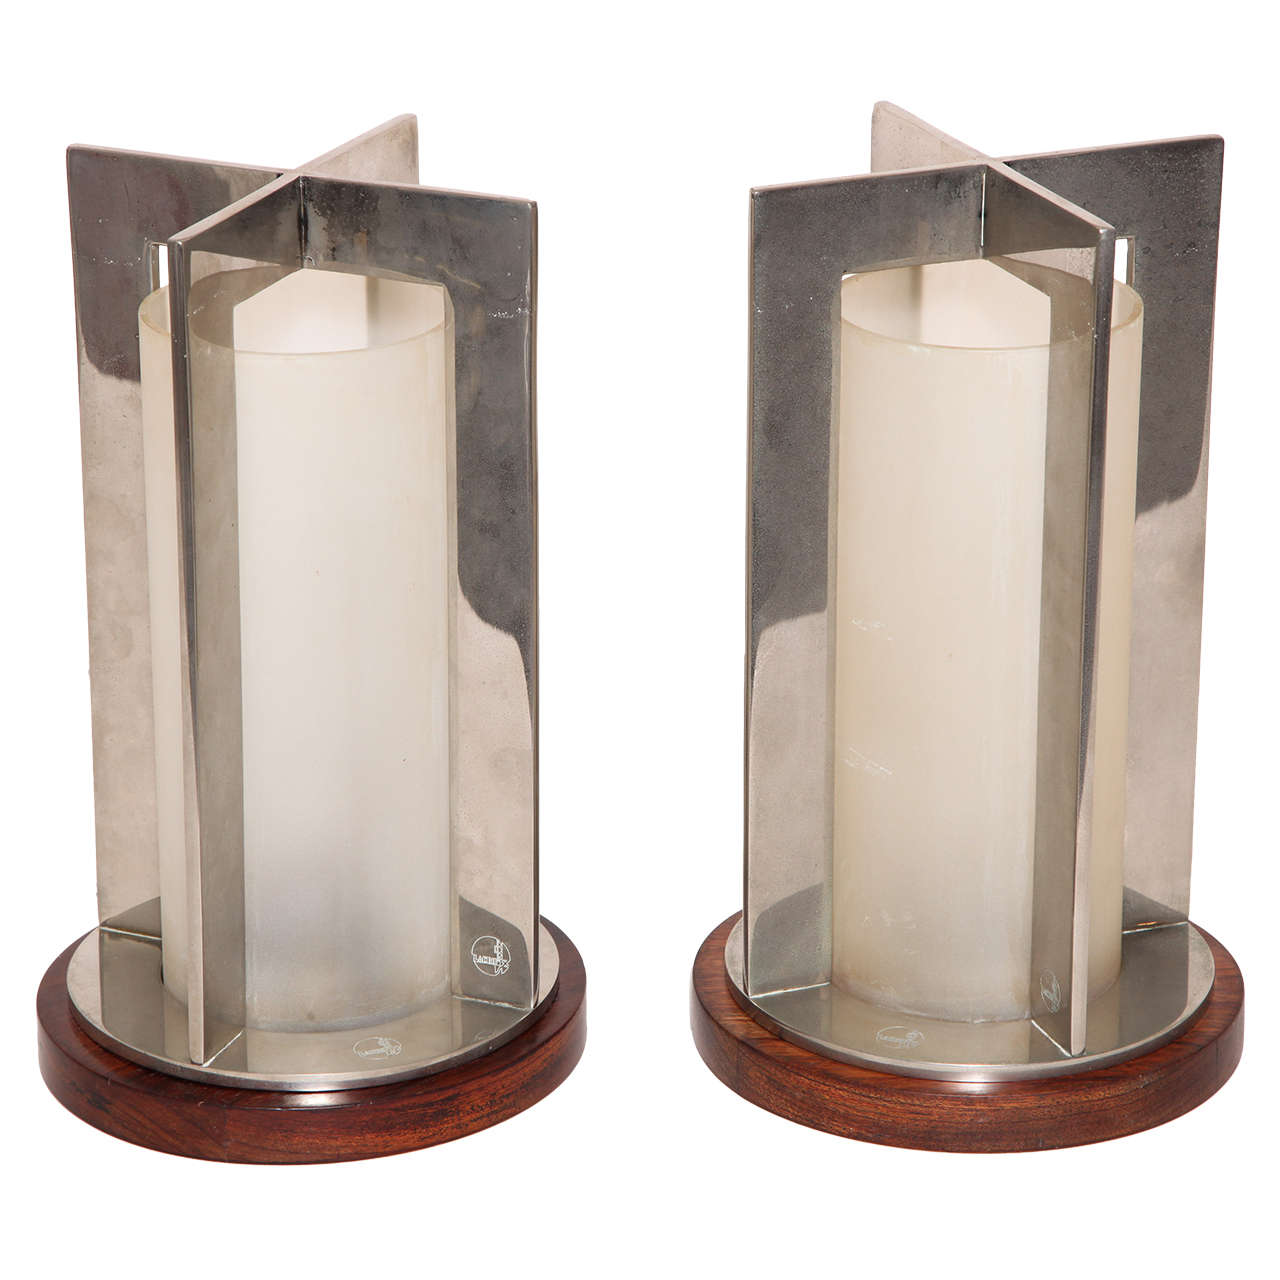 Boris Jean Lacroix Pair of French Art Deco Nickel and Frosted Glass Table Lamps